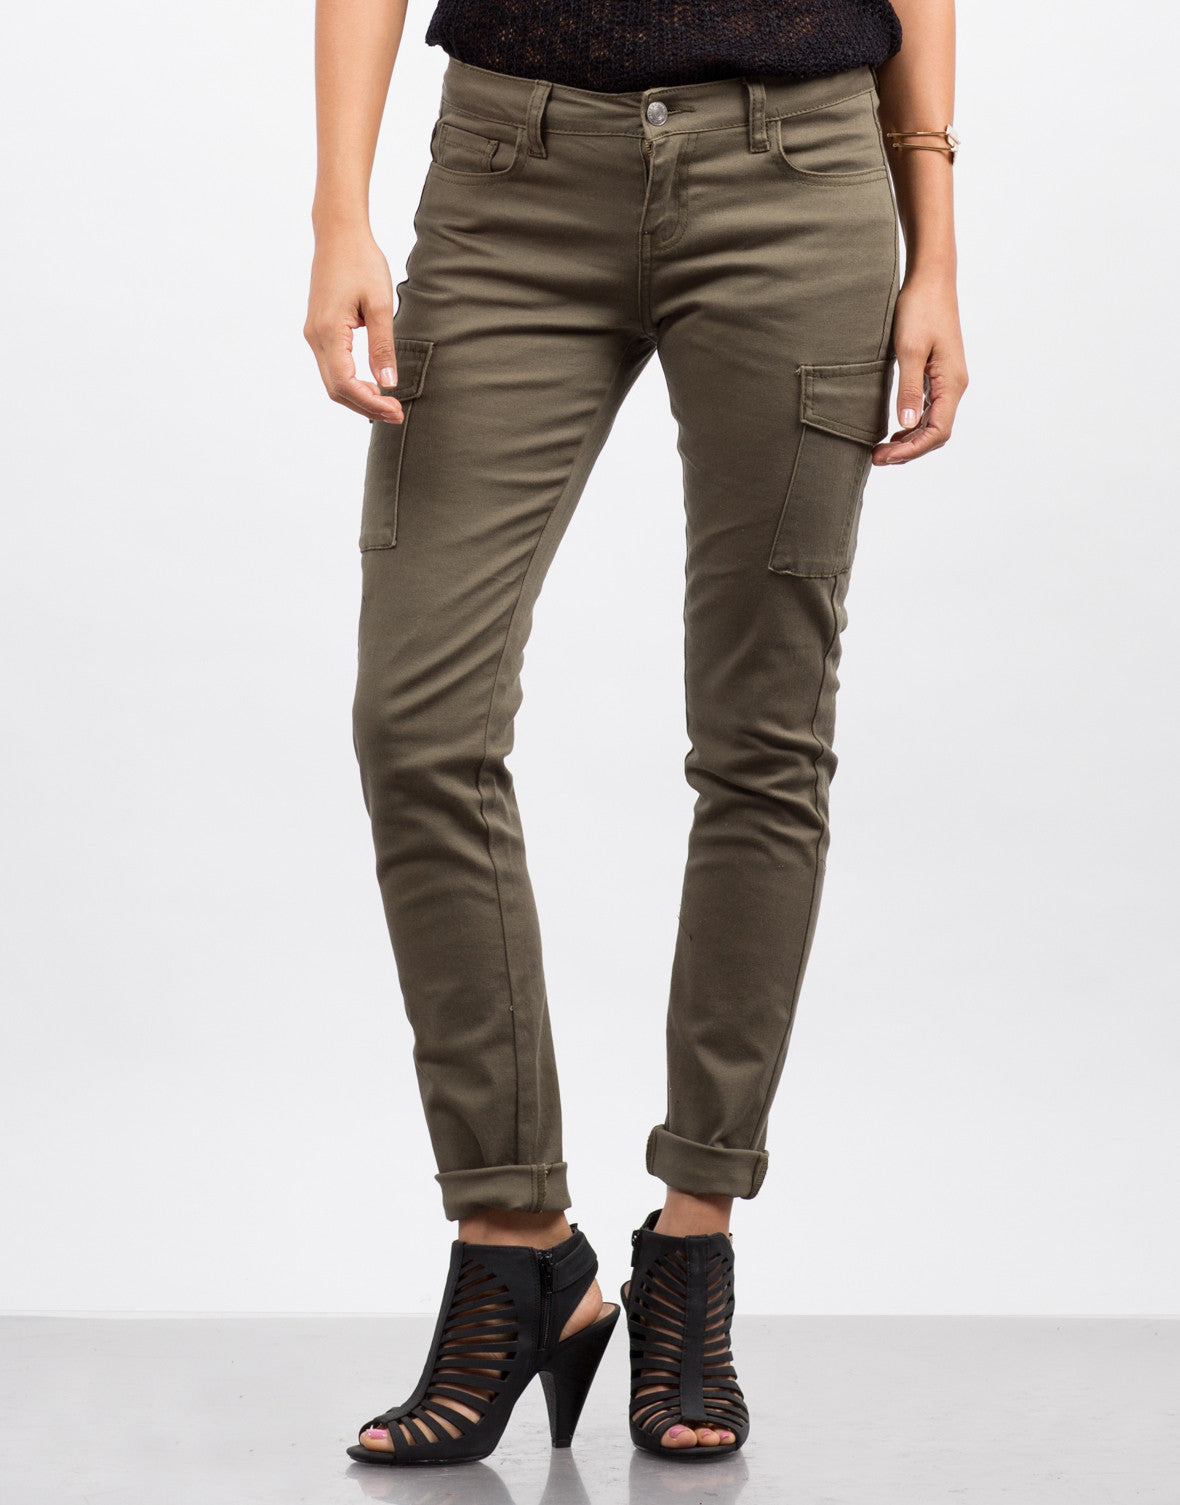 Front View of Cargo Pocket Skinny Denim Pants